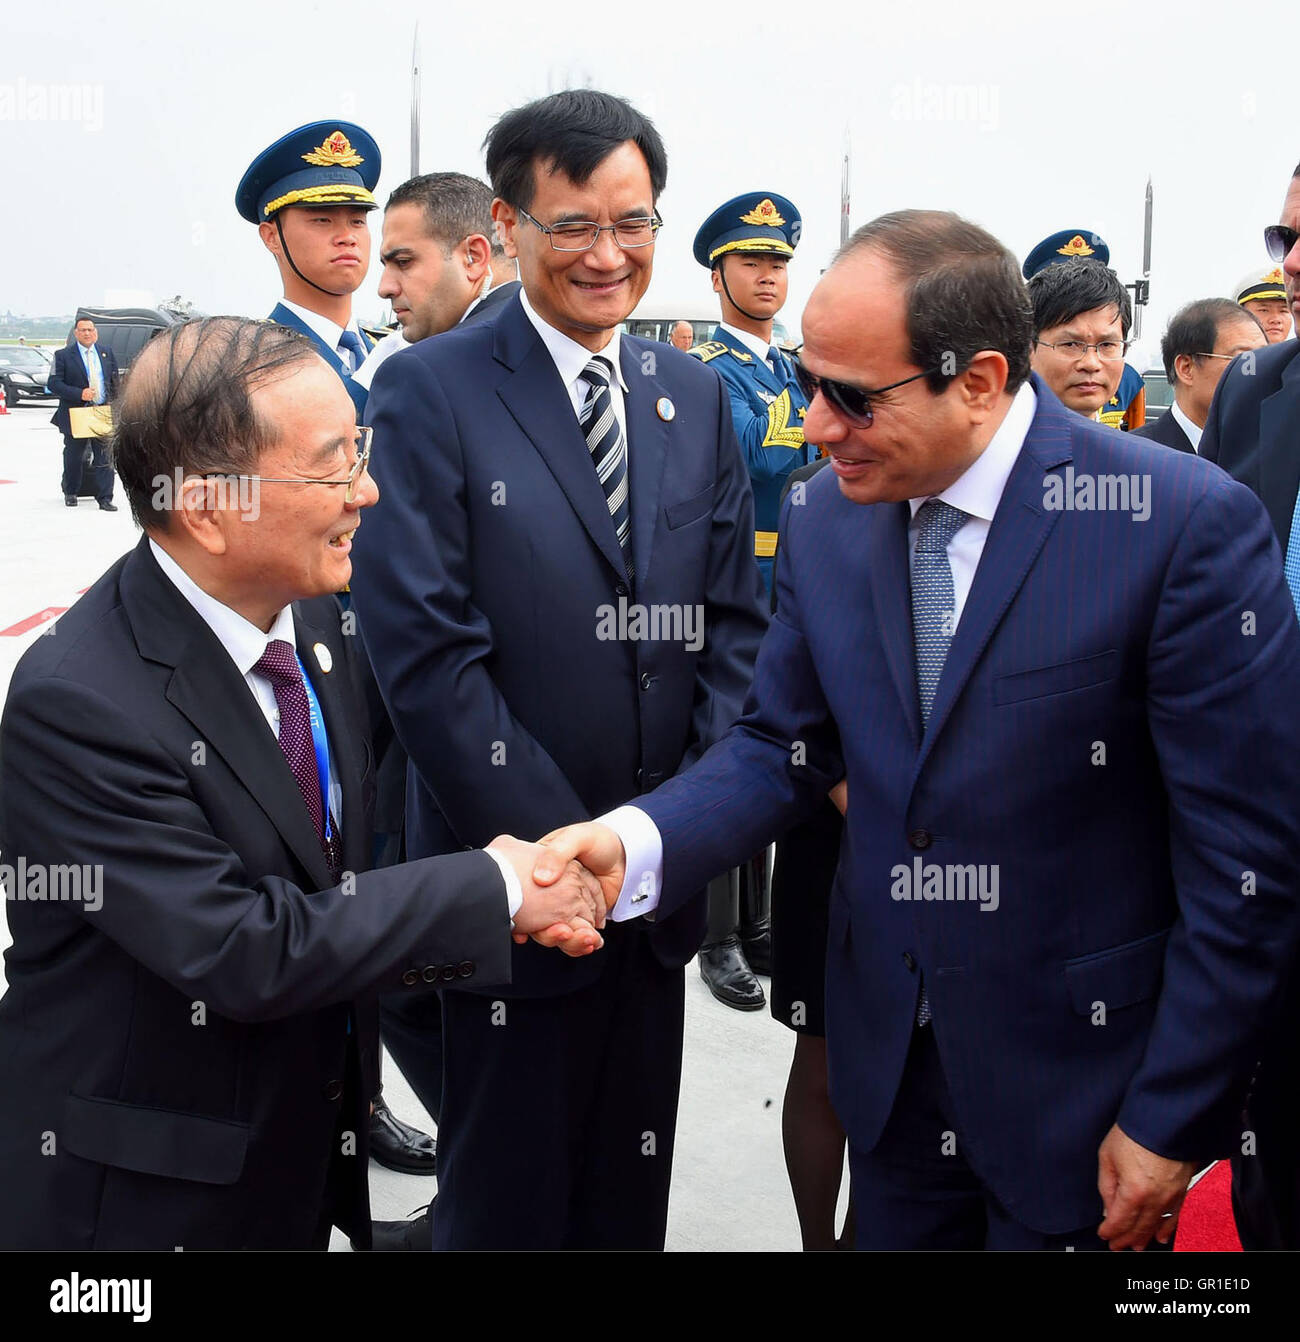 Hangzhou, Hangzhou, China. 6th Sep, 2016. Egyptian President Abdel Fattah al-Sisi leaves after he attends the G20 - Stock Image